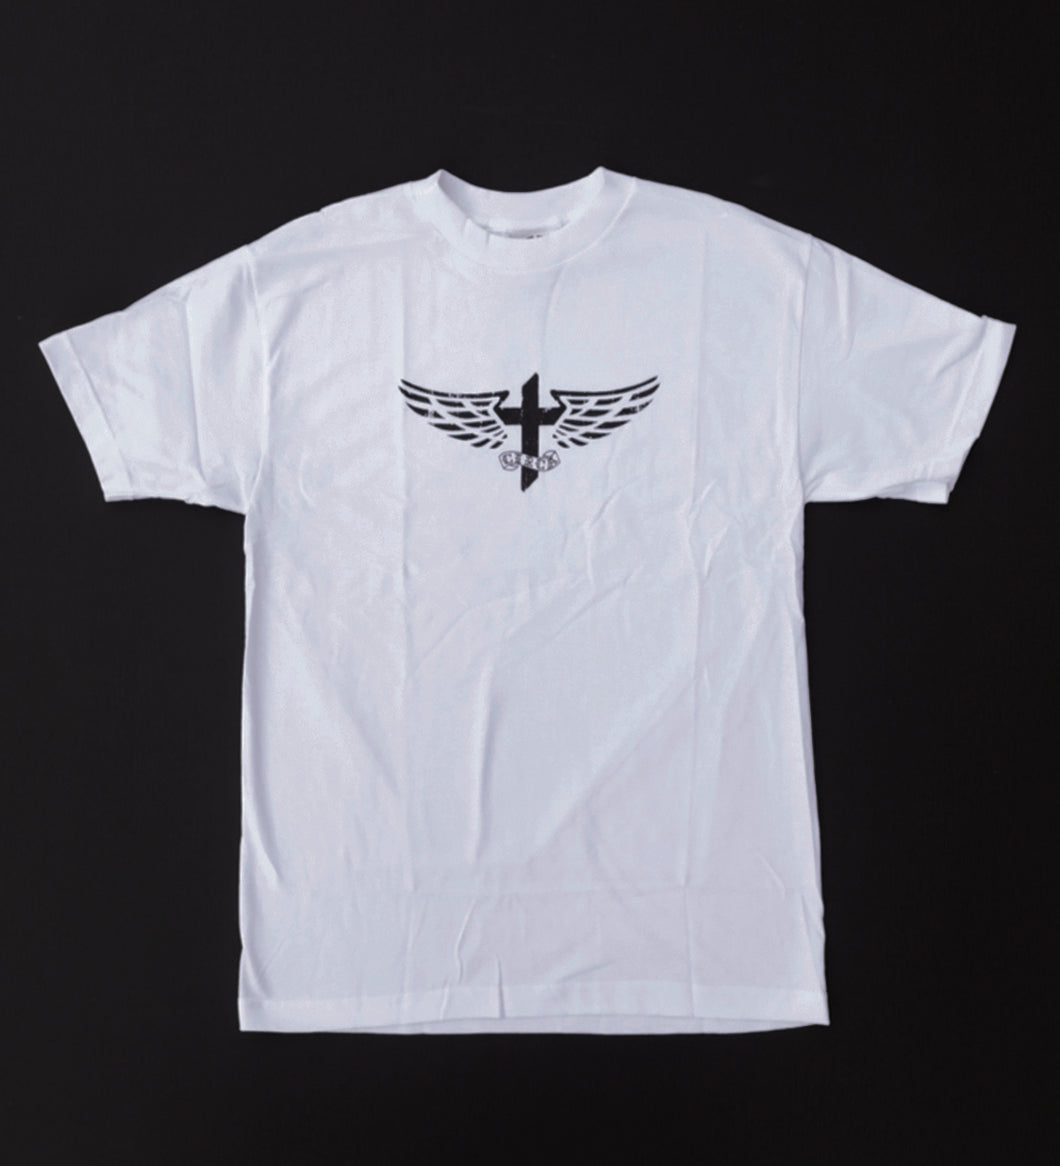 THOMAS 'CROSS & WINGS' T-SHIRT